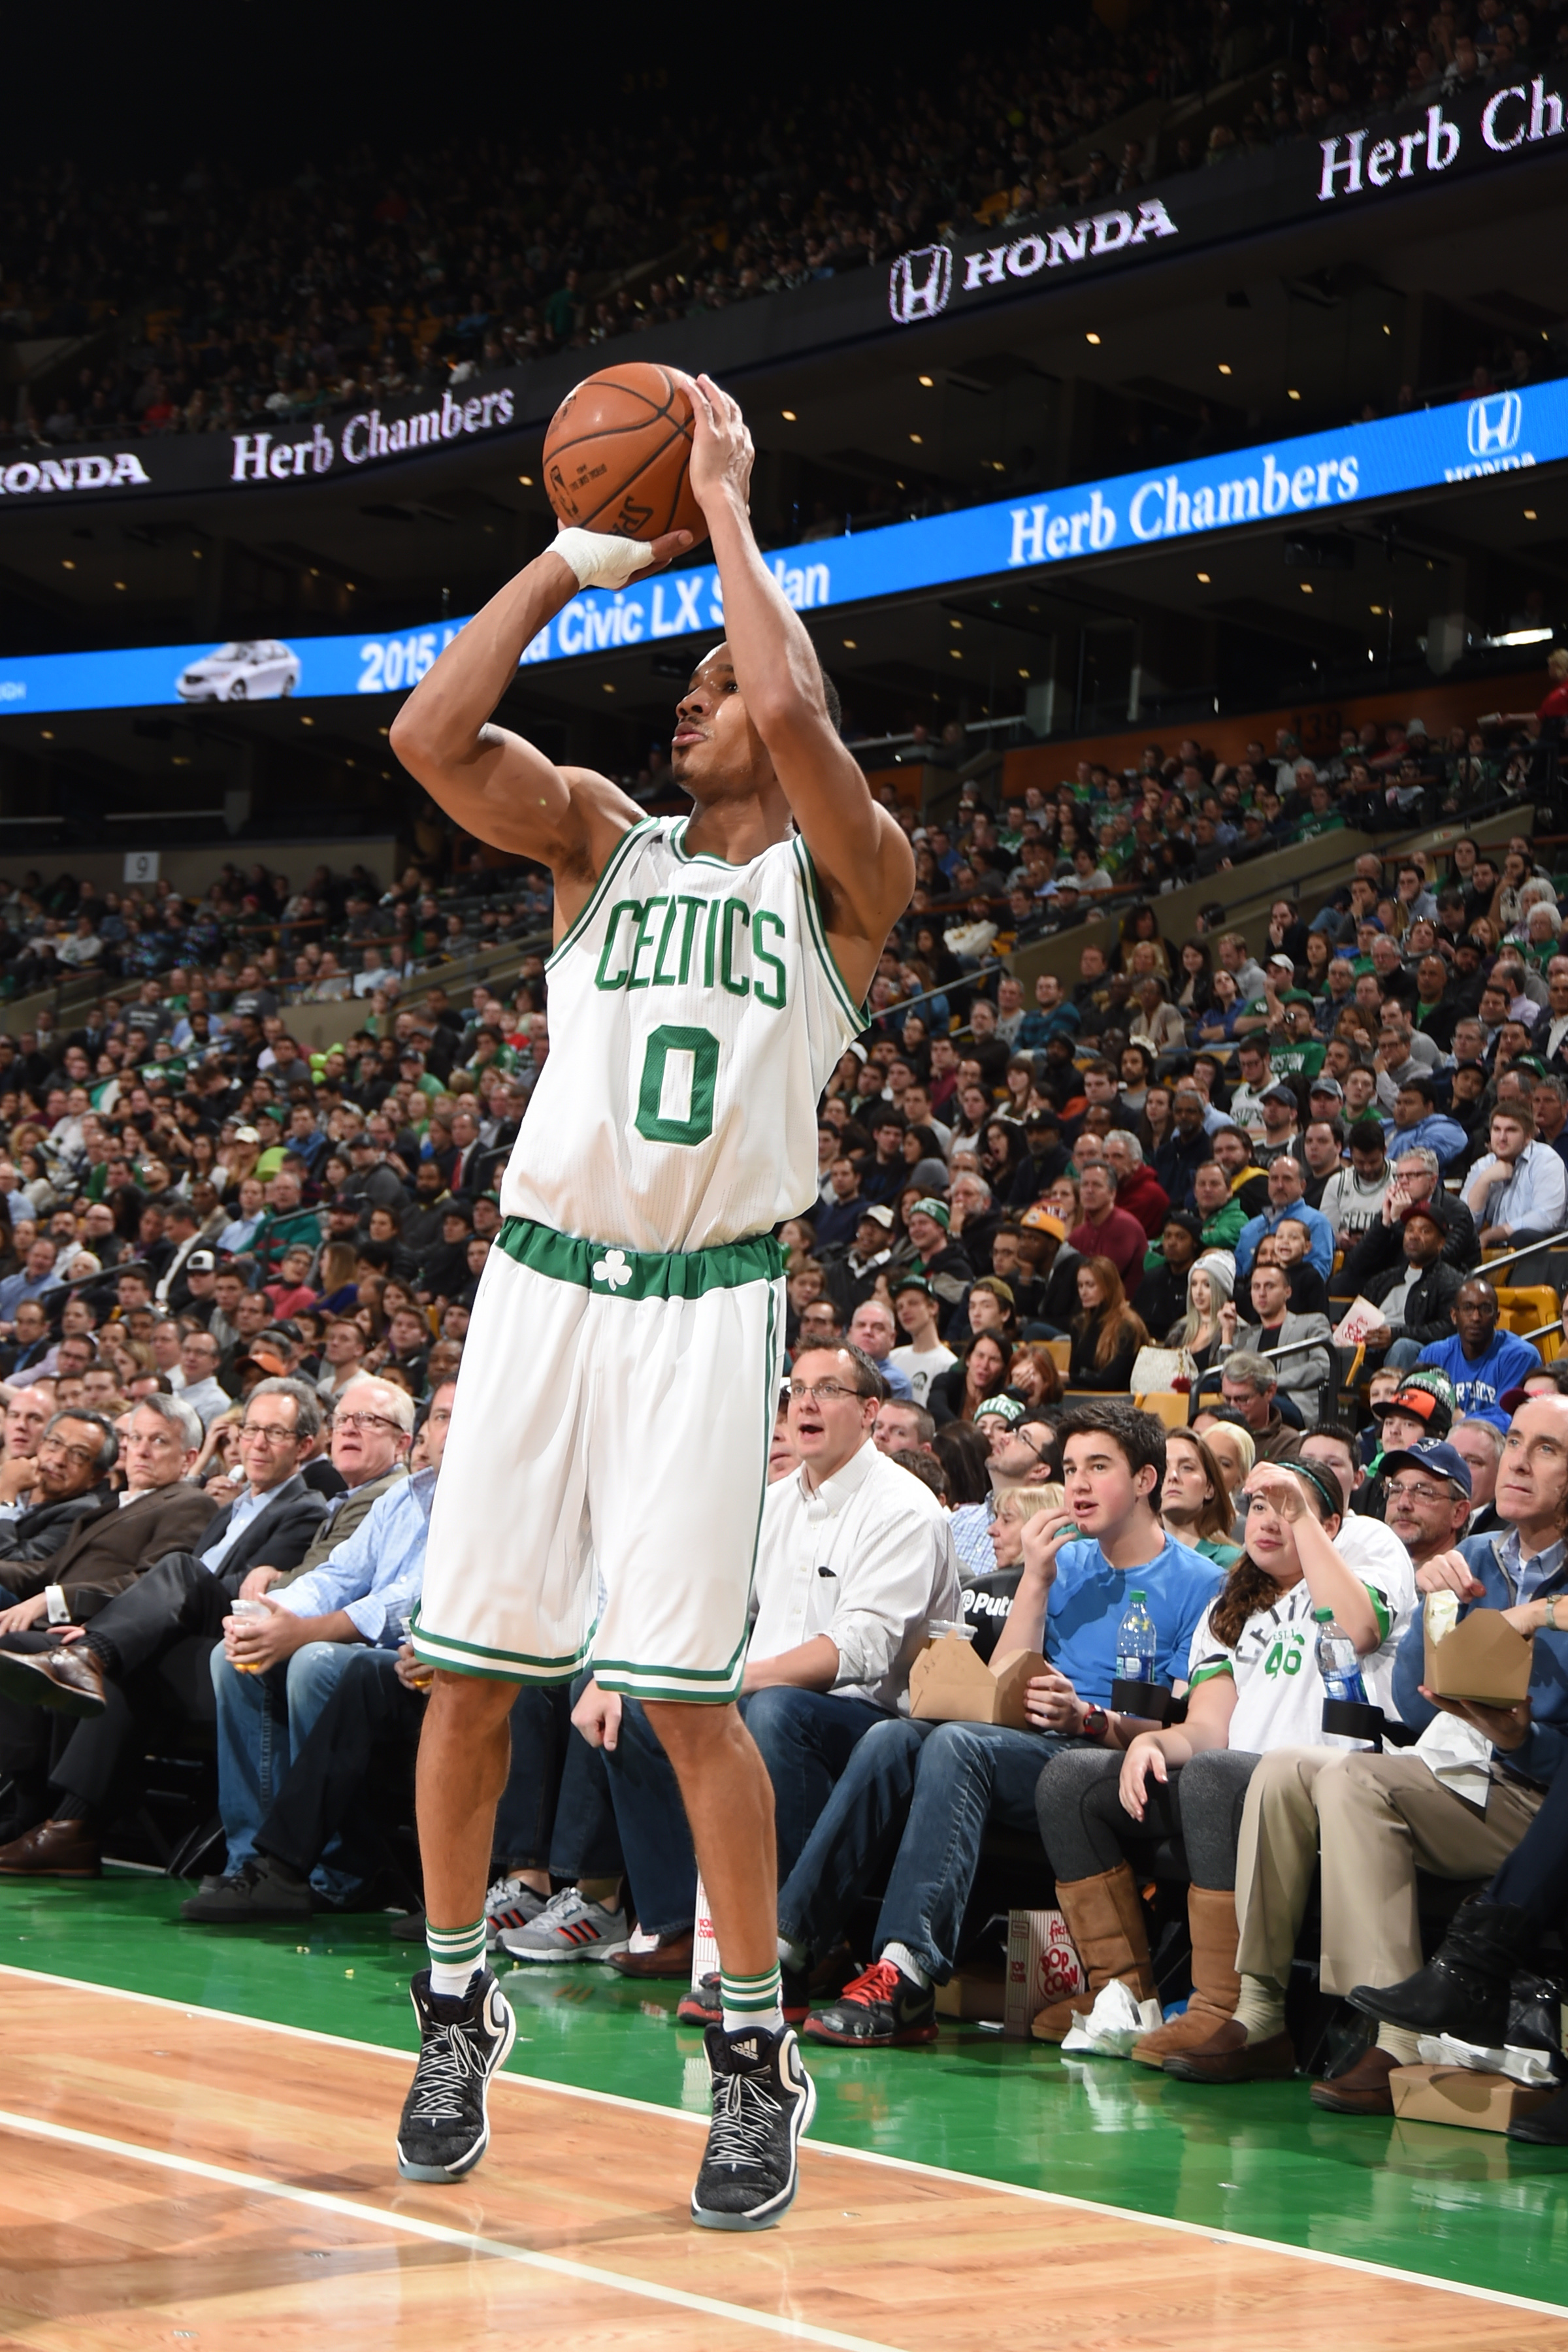 BOSTON, MA - JANUARY 27:  Avery Bradley #0 of the Boston Celtics shoots the ball against the Denver Nuggets on January 27, 2016 at the TD Garden in Boston, Massachusetts.  (Photo by Steve Babineau/NBAE via Getty Images)